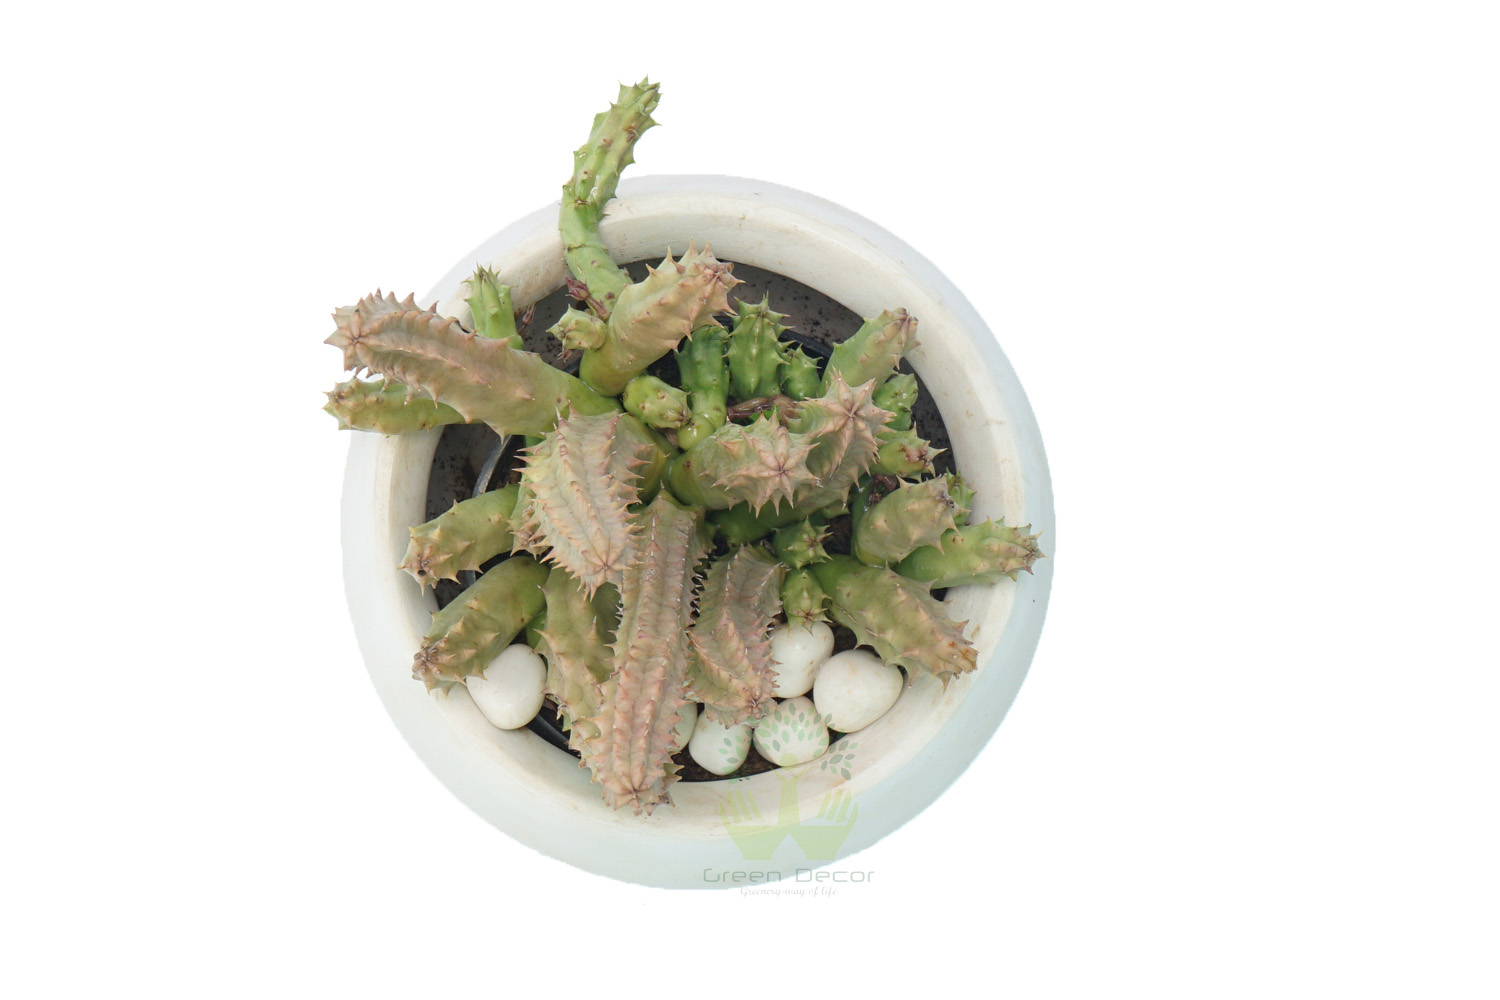 Buy Huernia Schneideriana Plants , White Pots and seeds in Delhi NCR by the best online nursery shop Greendecor.